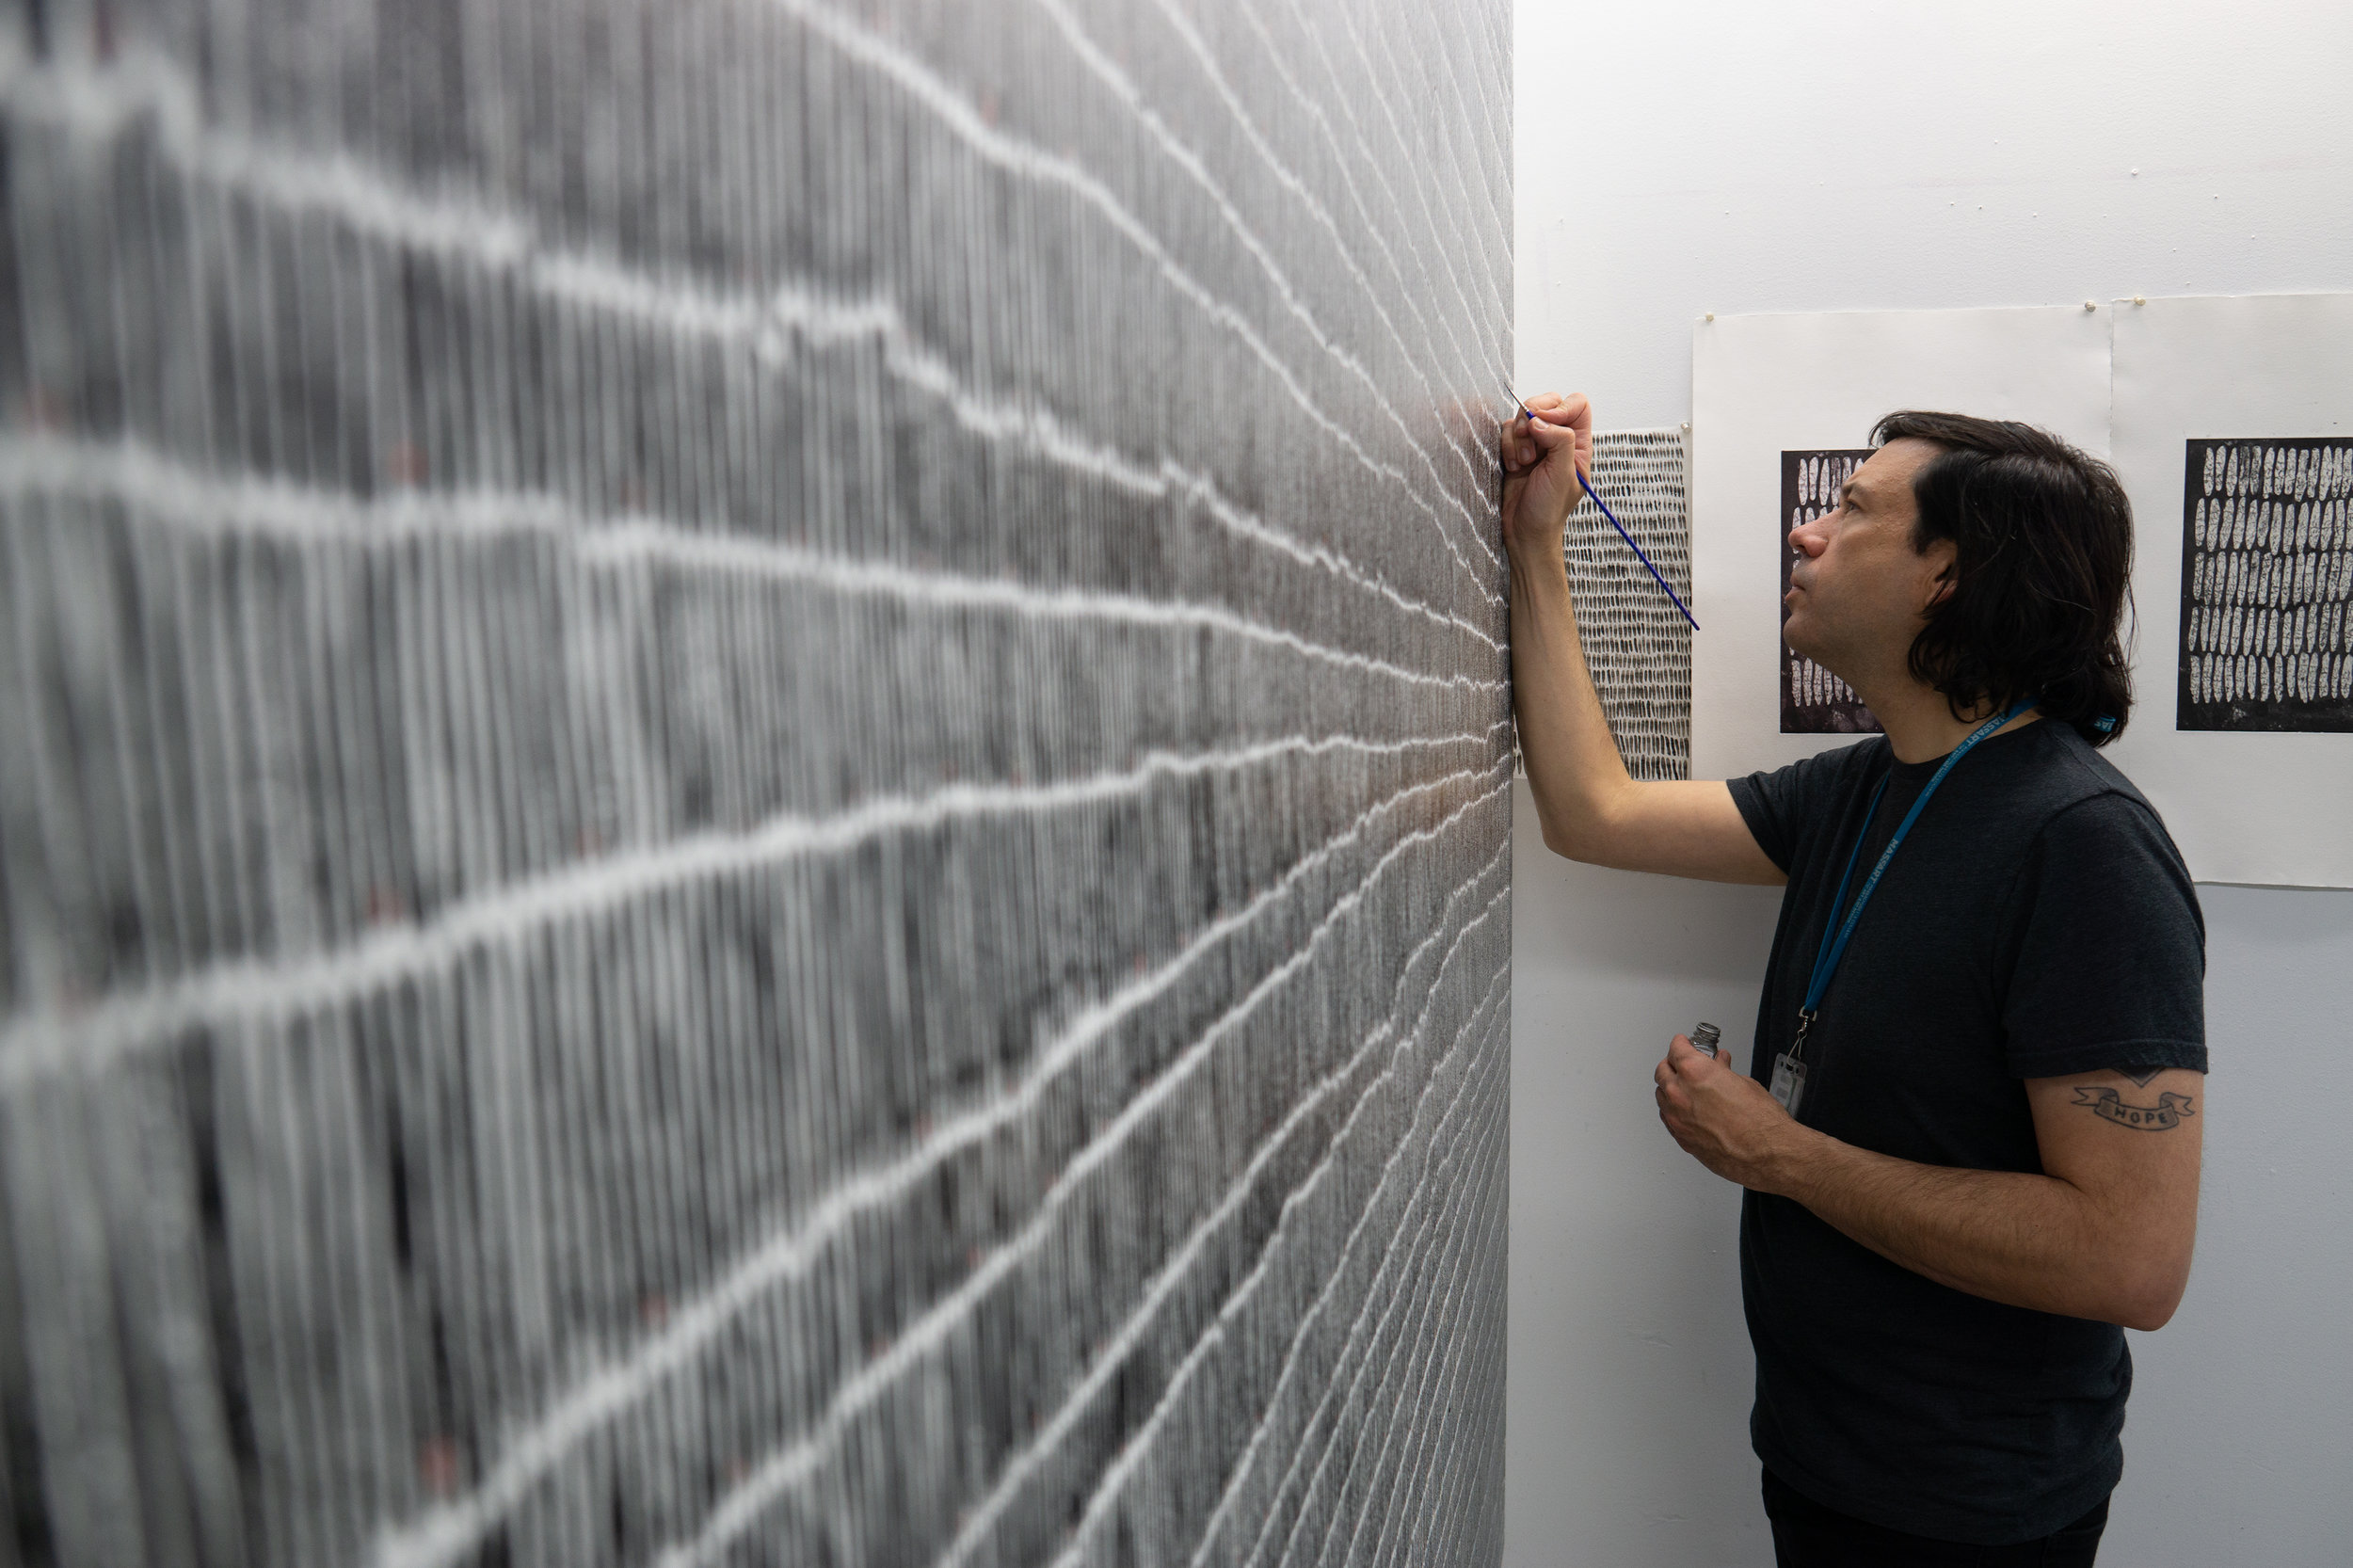 Damon Campagna working on his MFA Thesis Project  (photo by Richard W.P. Huang)